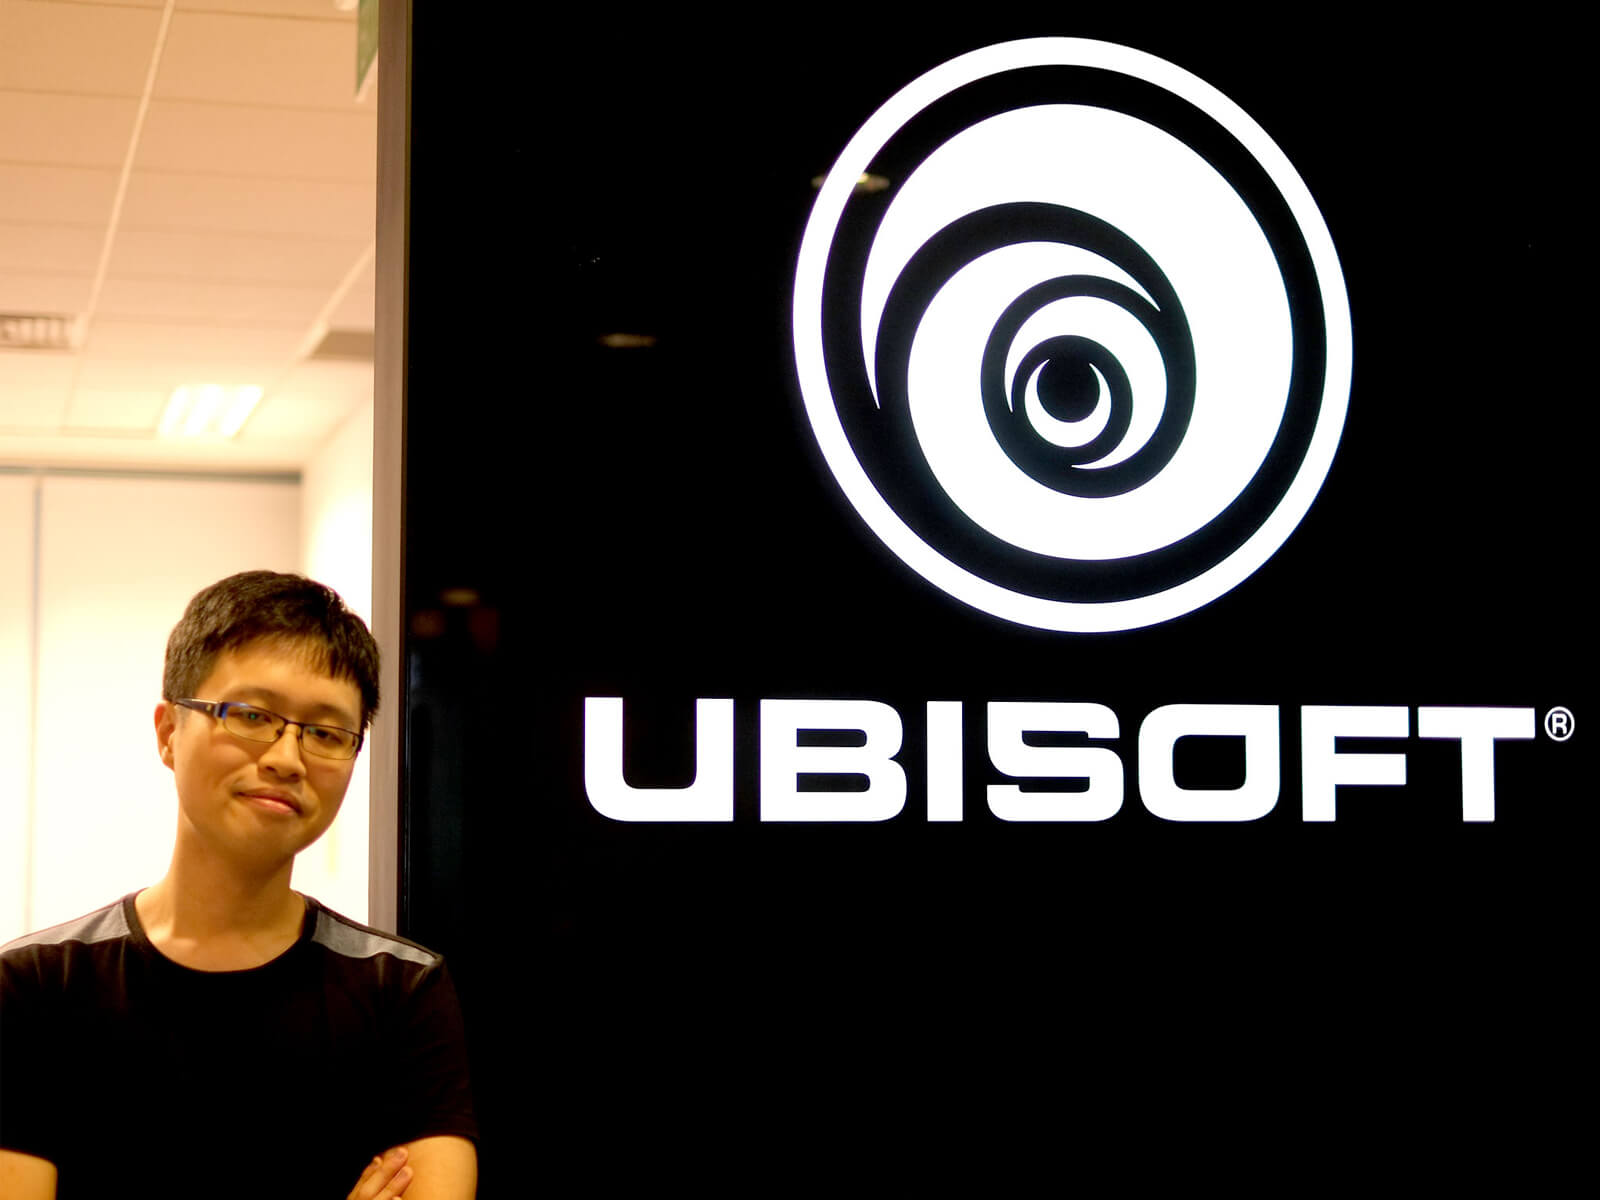 DigiPen graduate Chin Jia Hao stands with arms crossed next to black-and-white Ubisoft logo